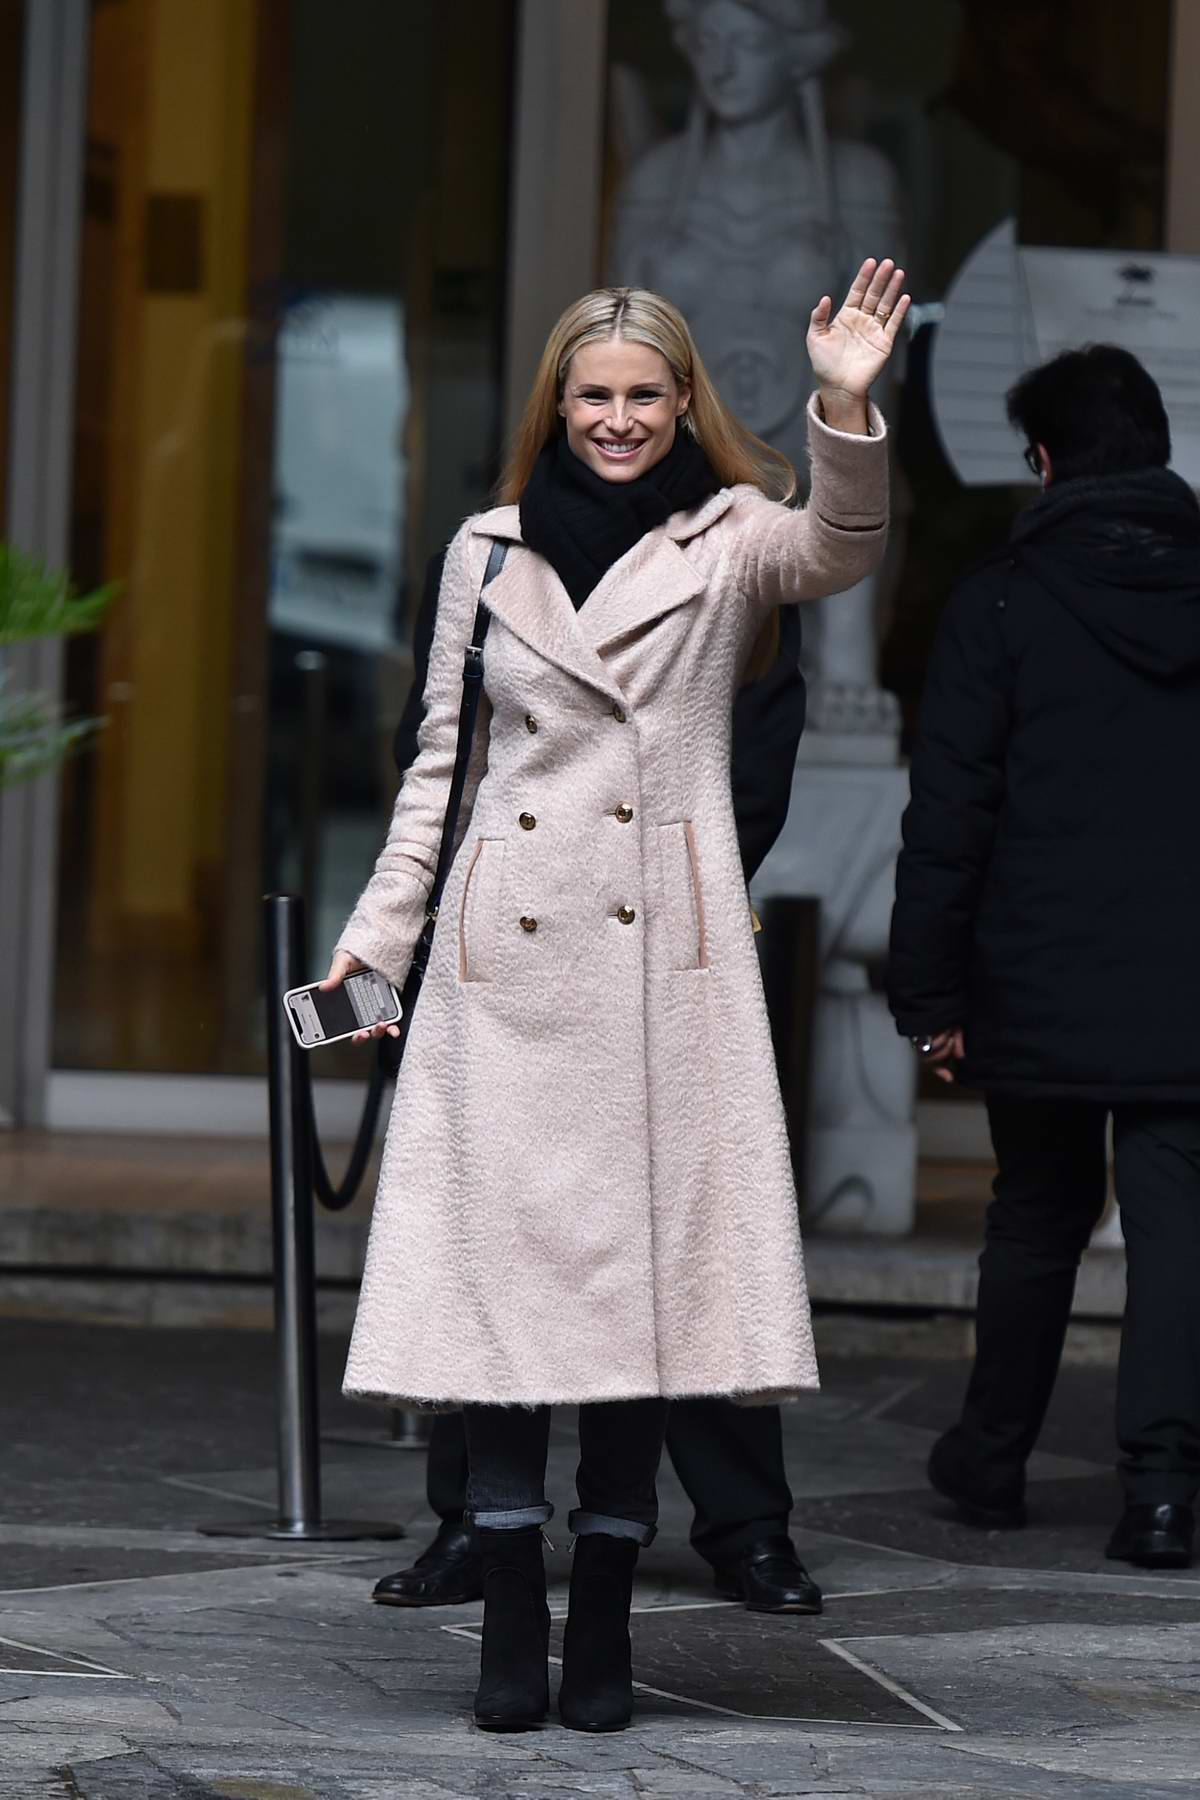 Michelle Hunziker waves to the cameras as she leaves her hotel in Sanremo, Italy